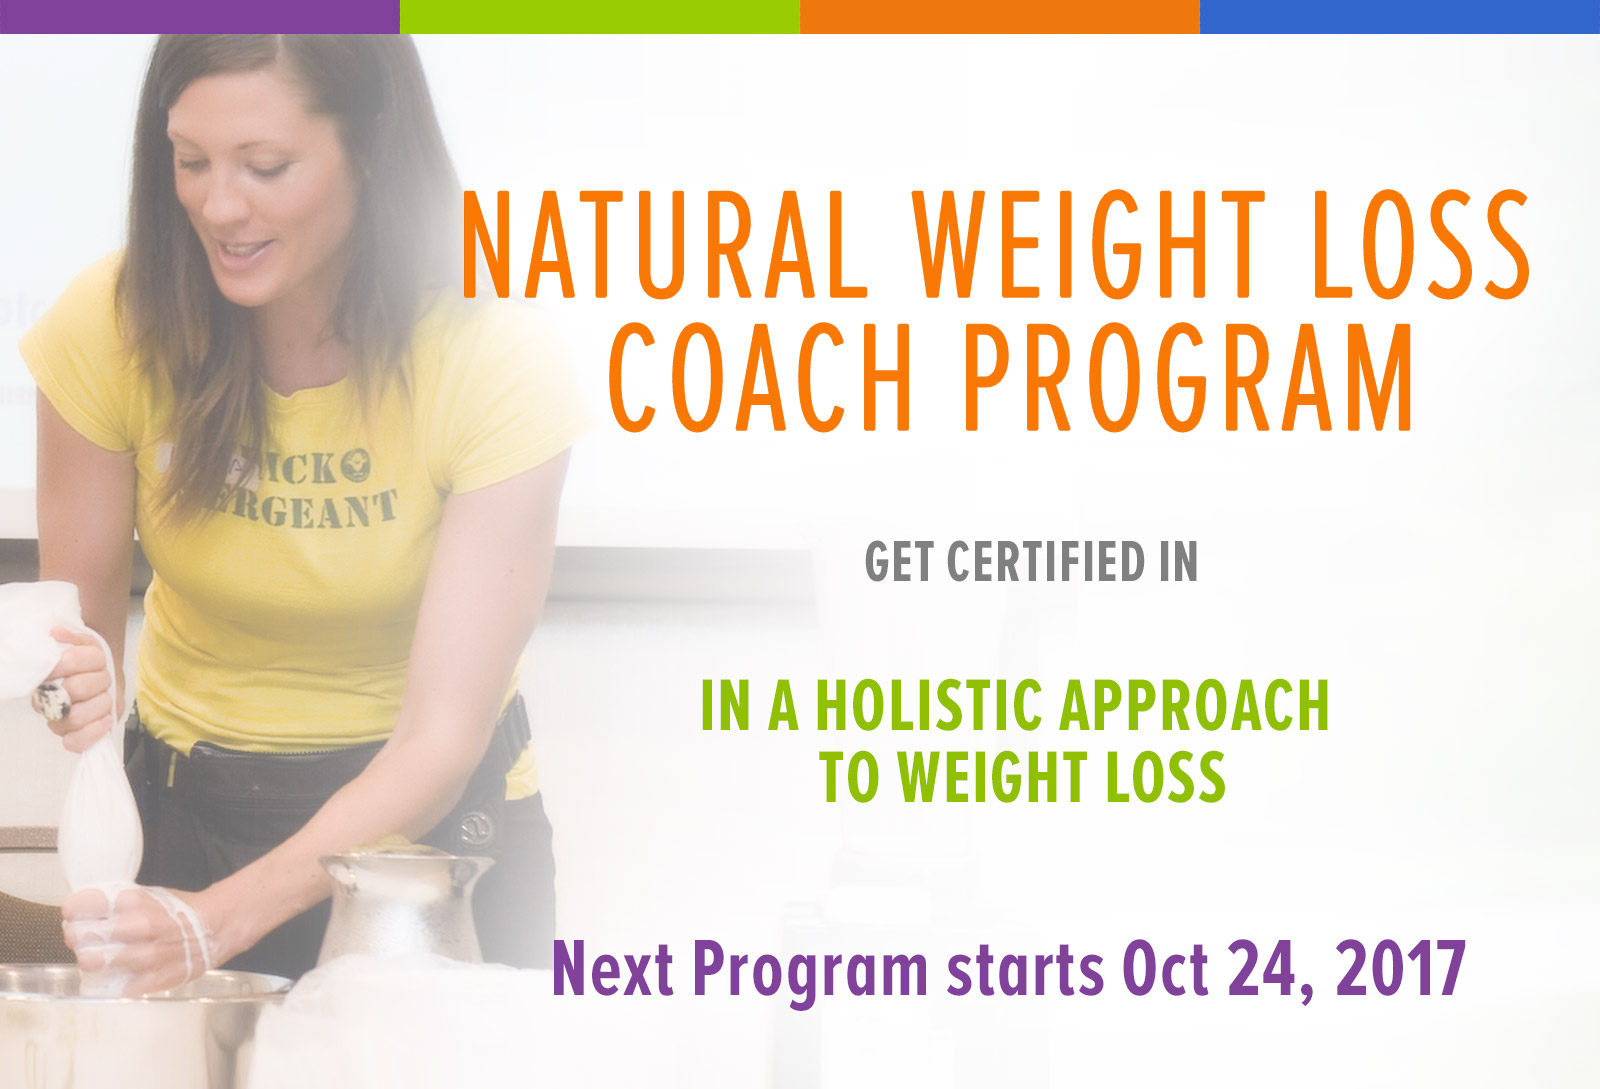 Sign Up To The Free Holistic Nutrition Weight Loss Expert Program Brochure 2018 Dates Receive Fit S News